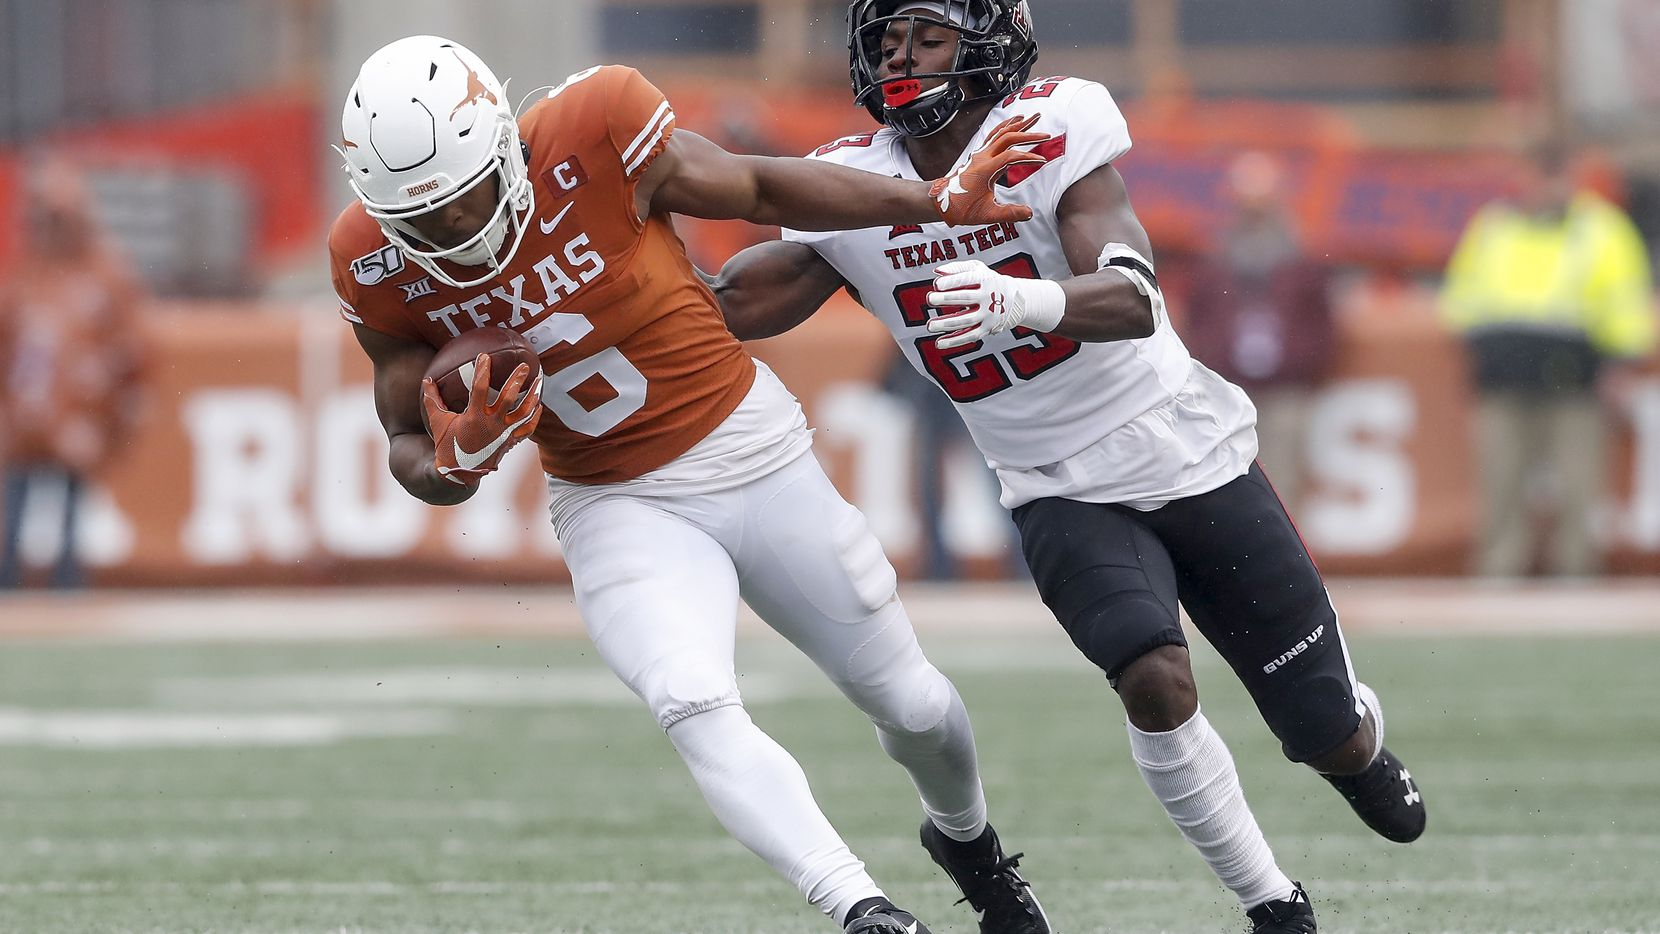 AUSTIN, TX - NOVEMBER 29:  Devin Duvernay #6 of the Texas Longhorns attempts to avoid a tackle by Damarcus Fields #23 of the Texas Tech Red Raiders in the second half at Darrell K Royal-Texas Memorial Stadium on November 29, 2019 in Austin, Texas.